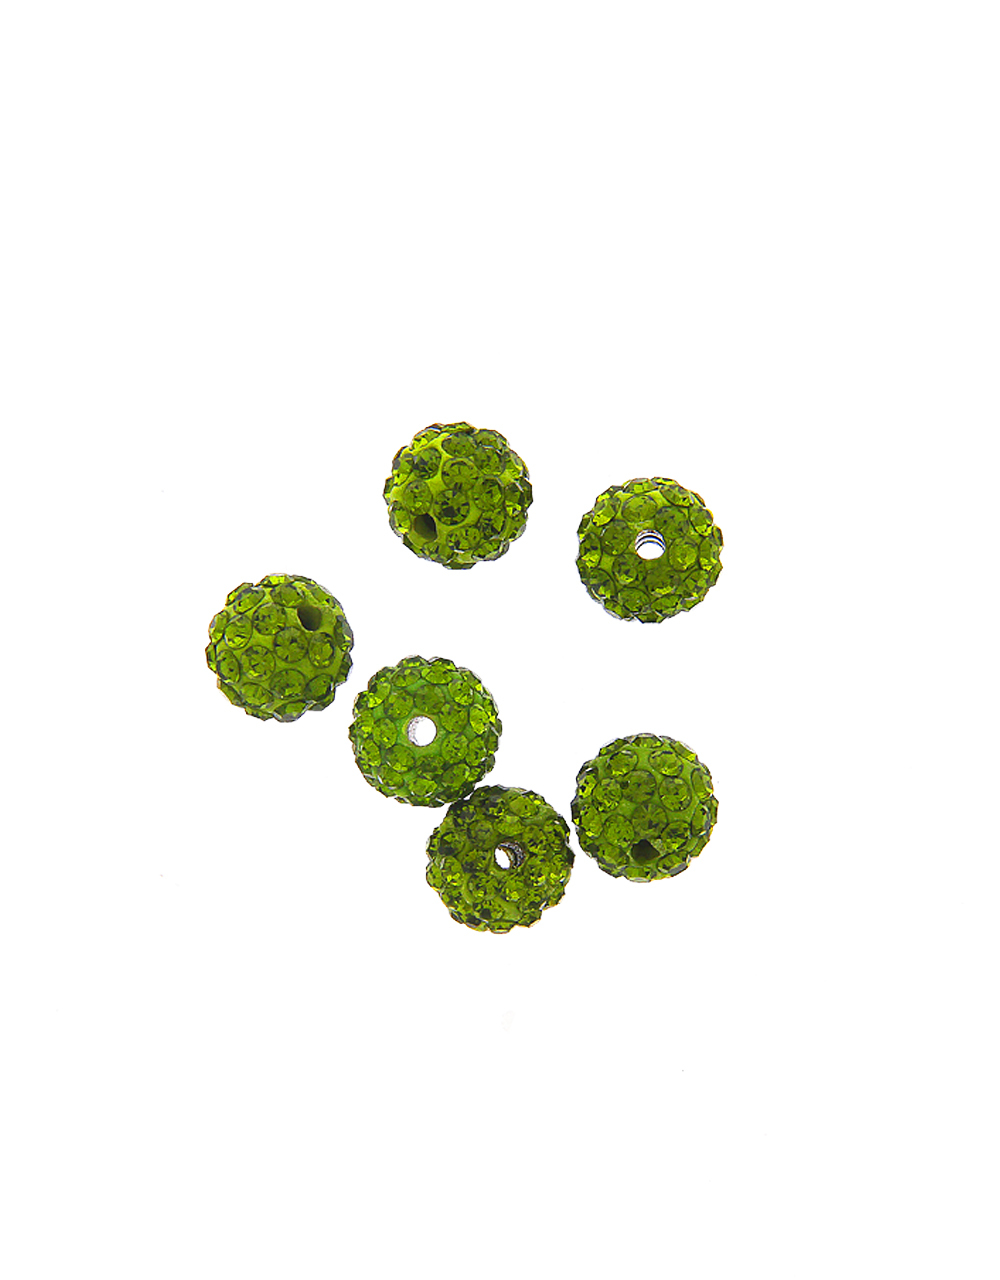 Green Colour Fashionable Beads Ball Material